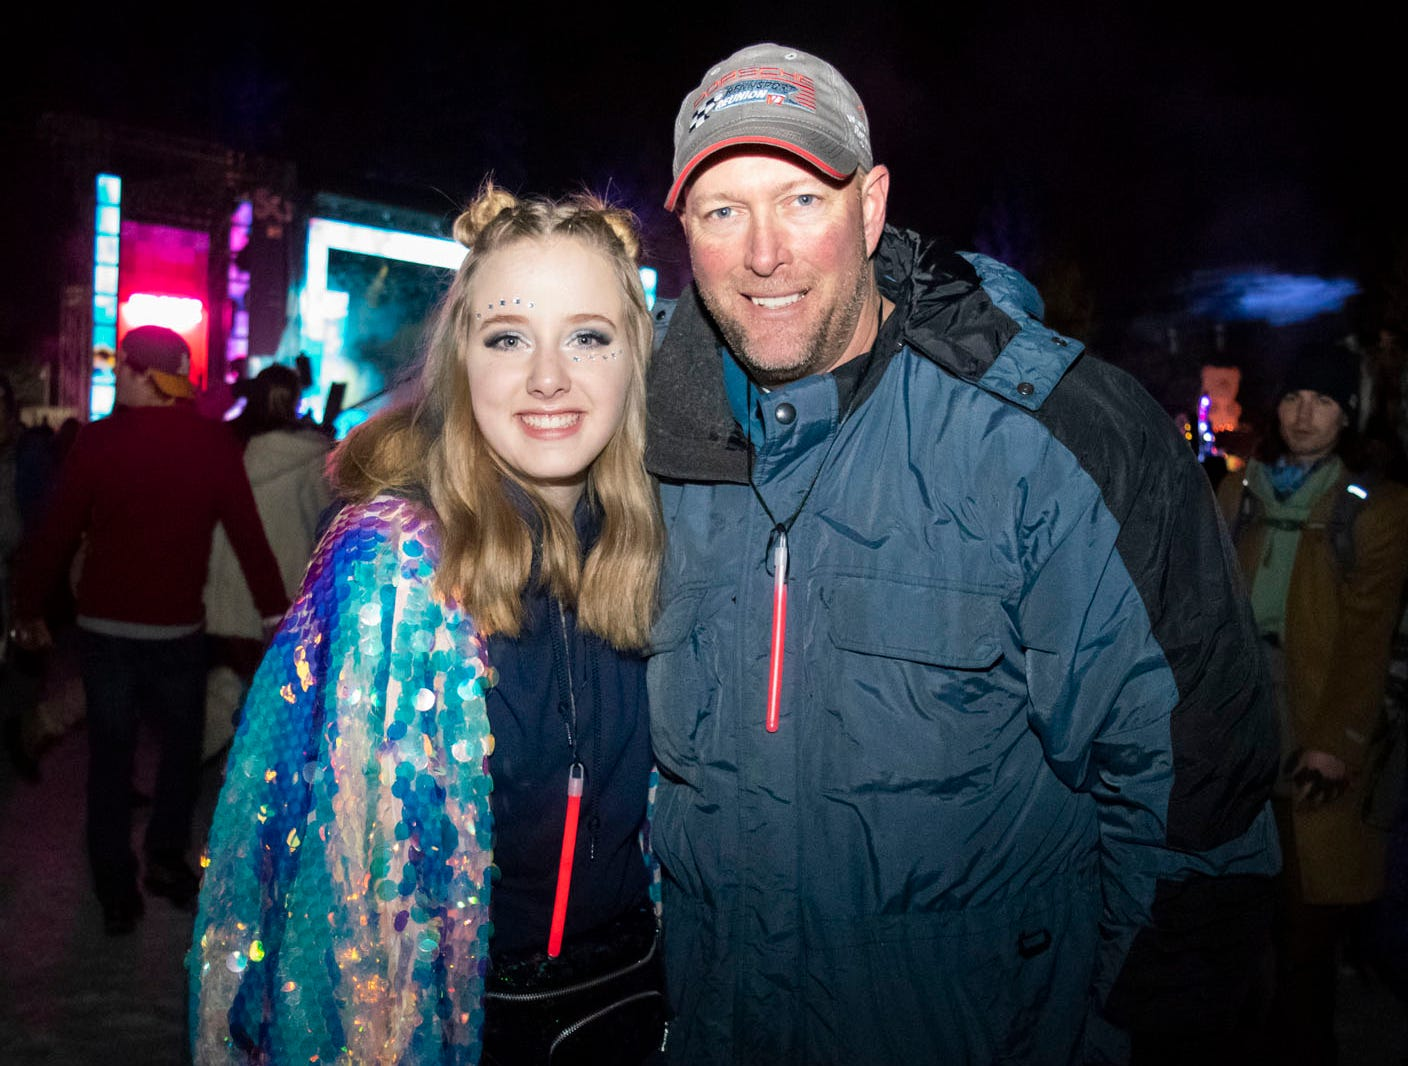 Raelin and Ron Wilson attend the Snowglobe Music Festival on Saturday, Dec. 29, 2018. South Lake Tahoe, Calif.